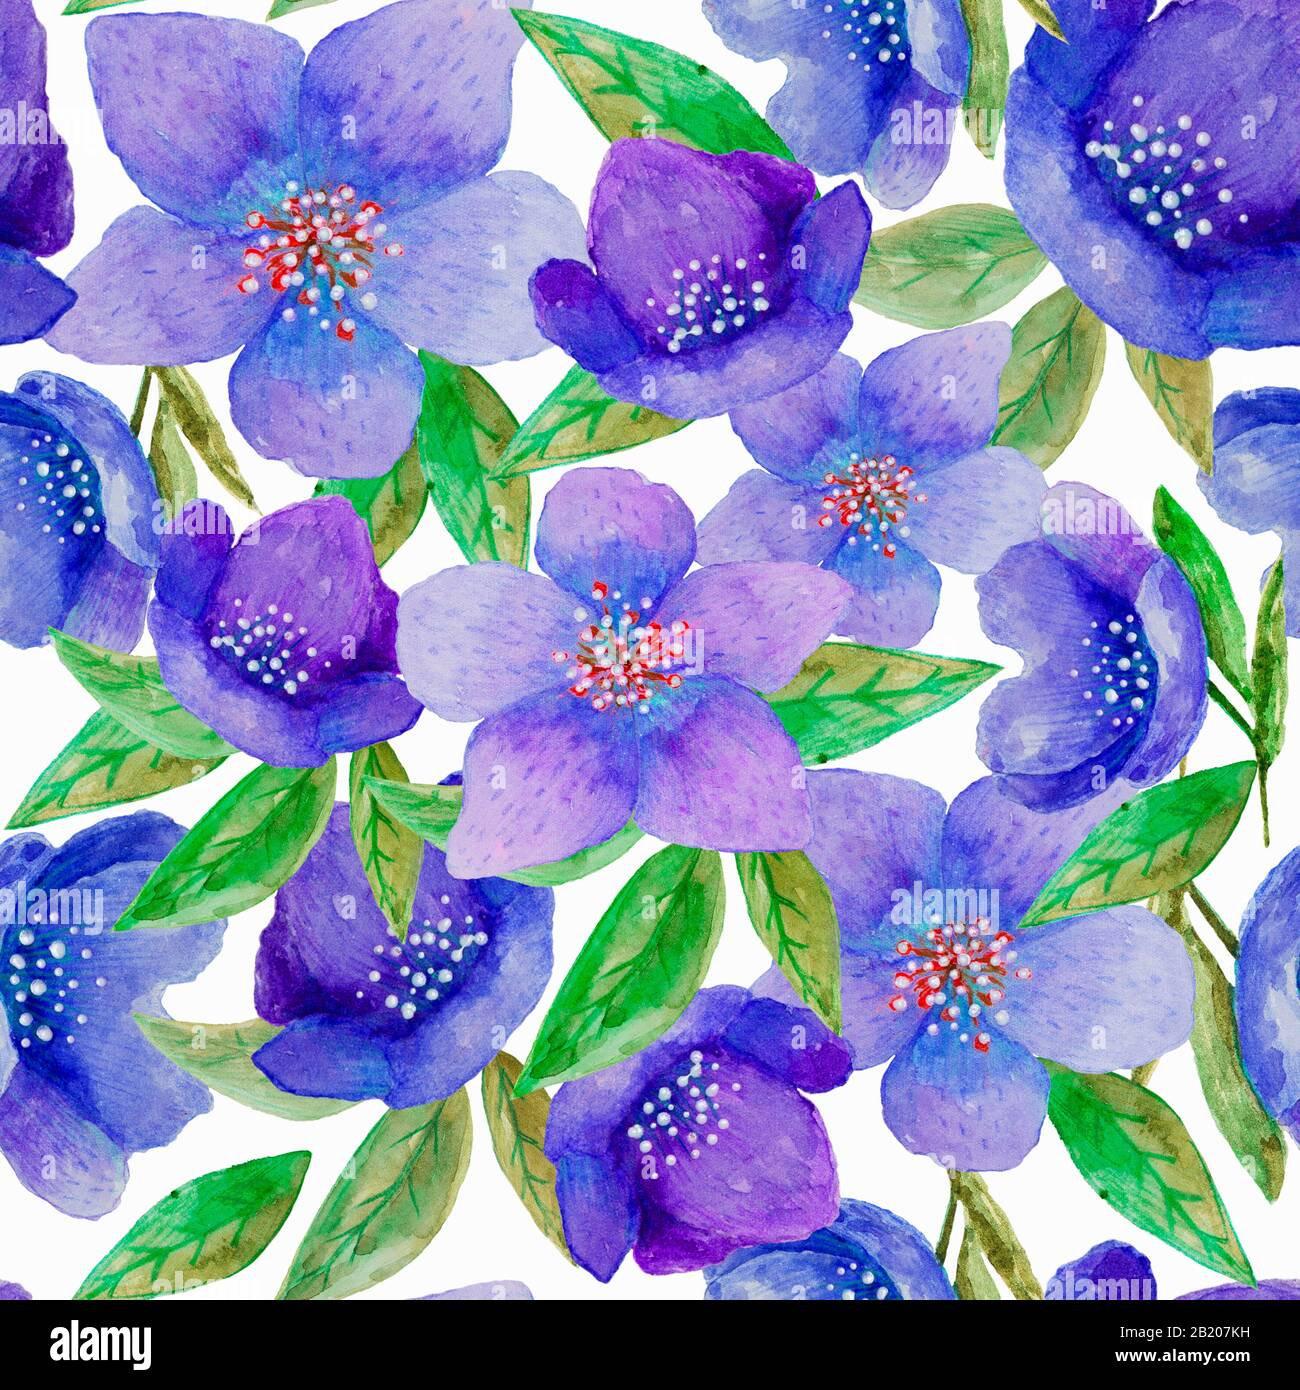 Seamless Watercolor Hand Painted Floral Pattern With Of Blue